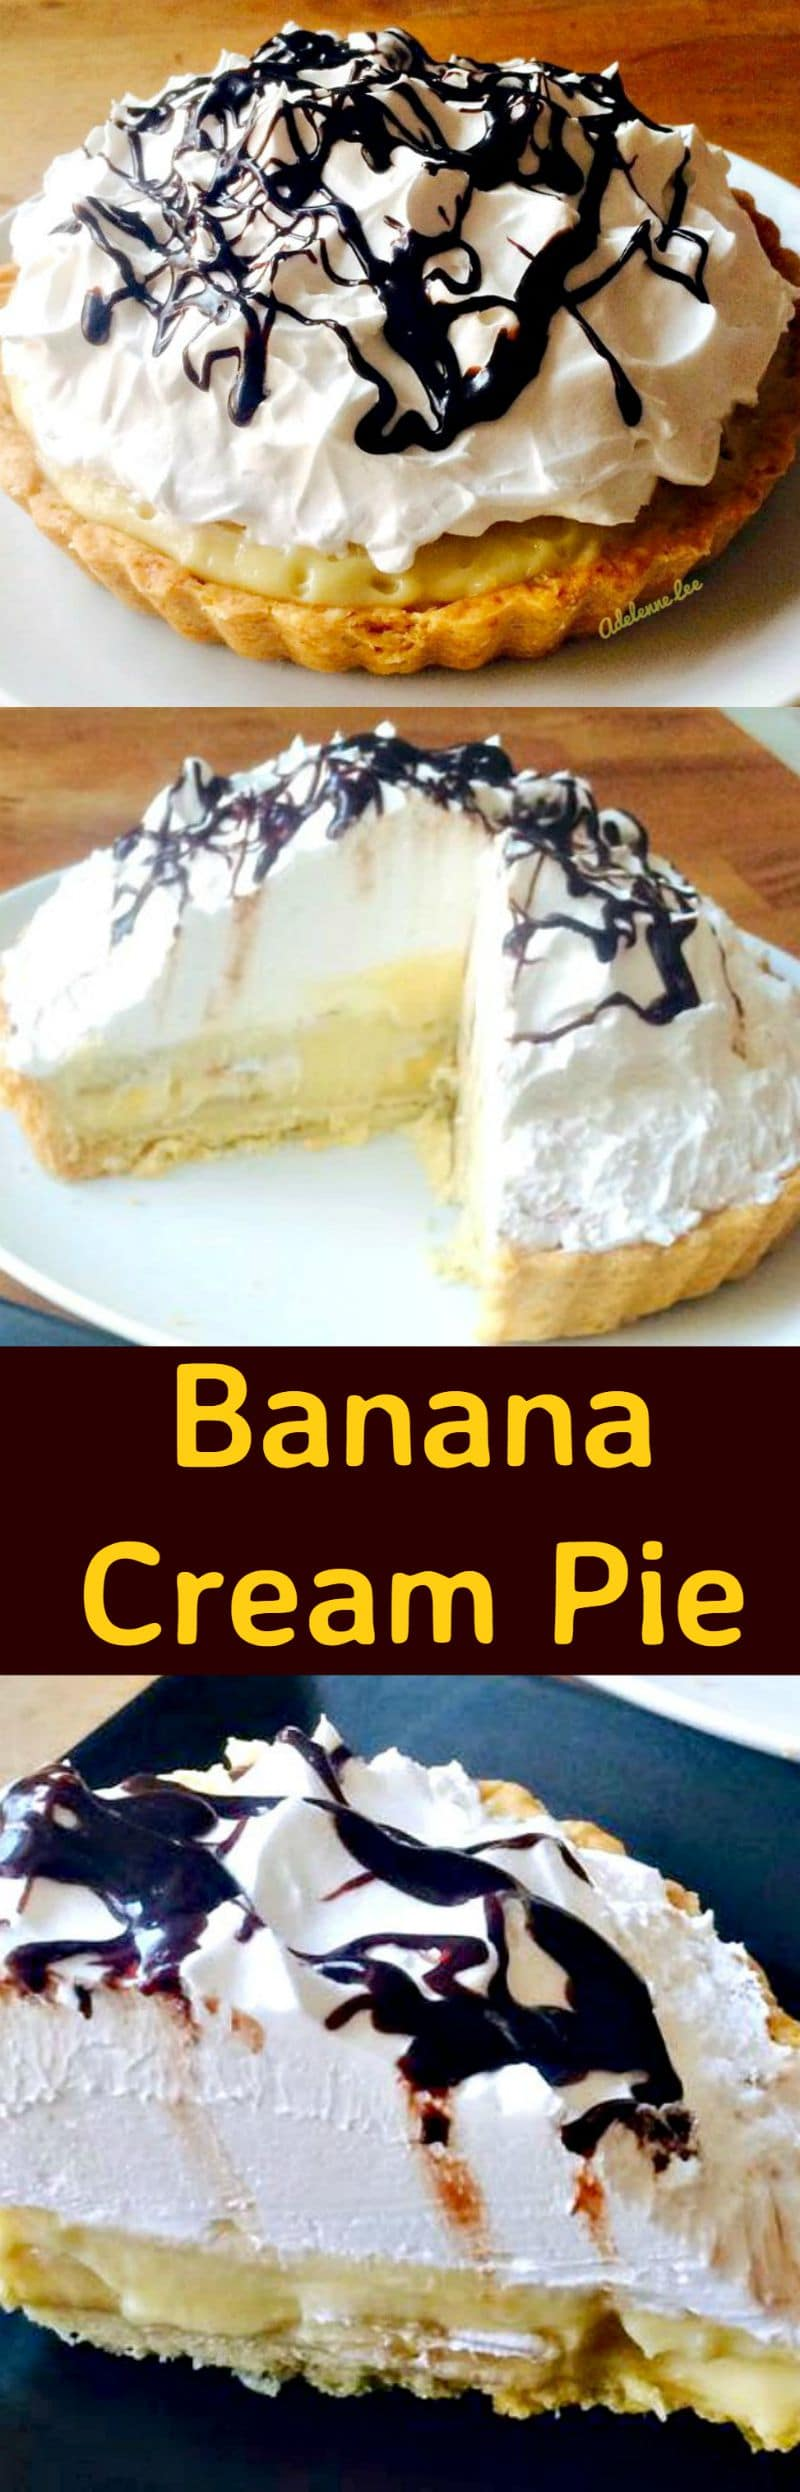 Banana Cream Pie, made from scratch, VERY easy and oh so delicious!